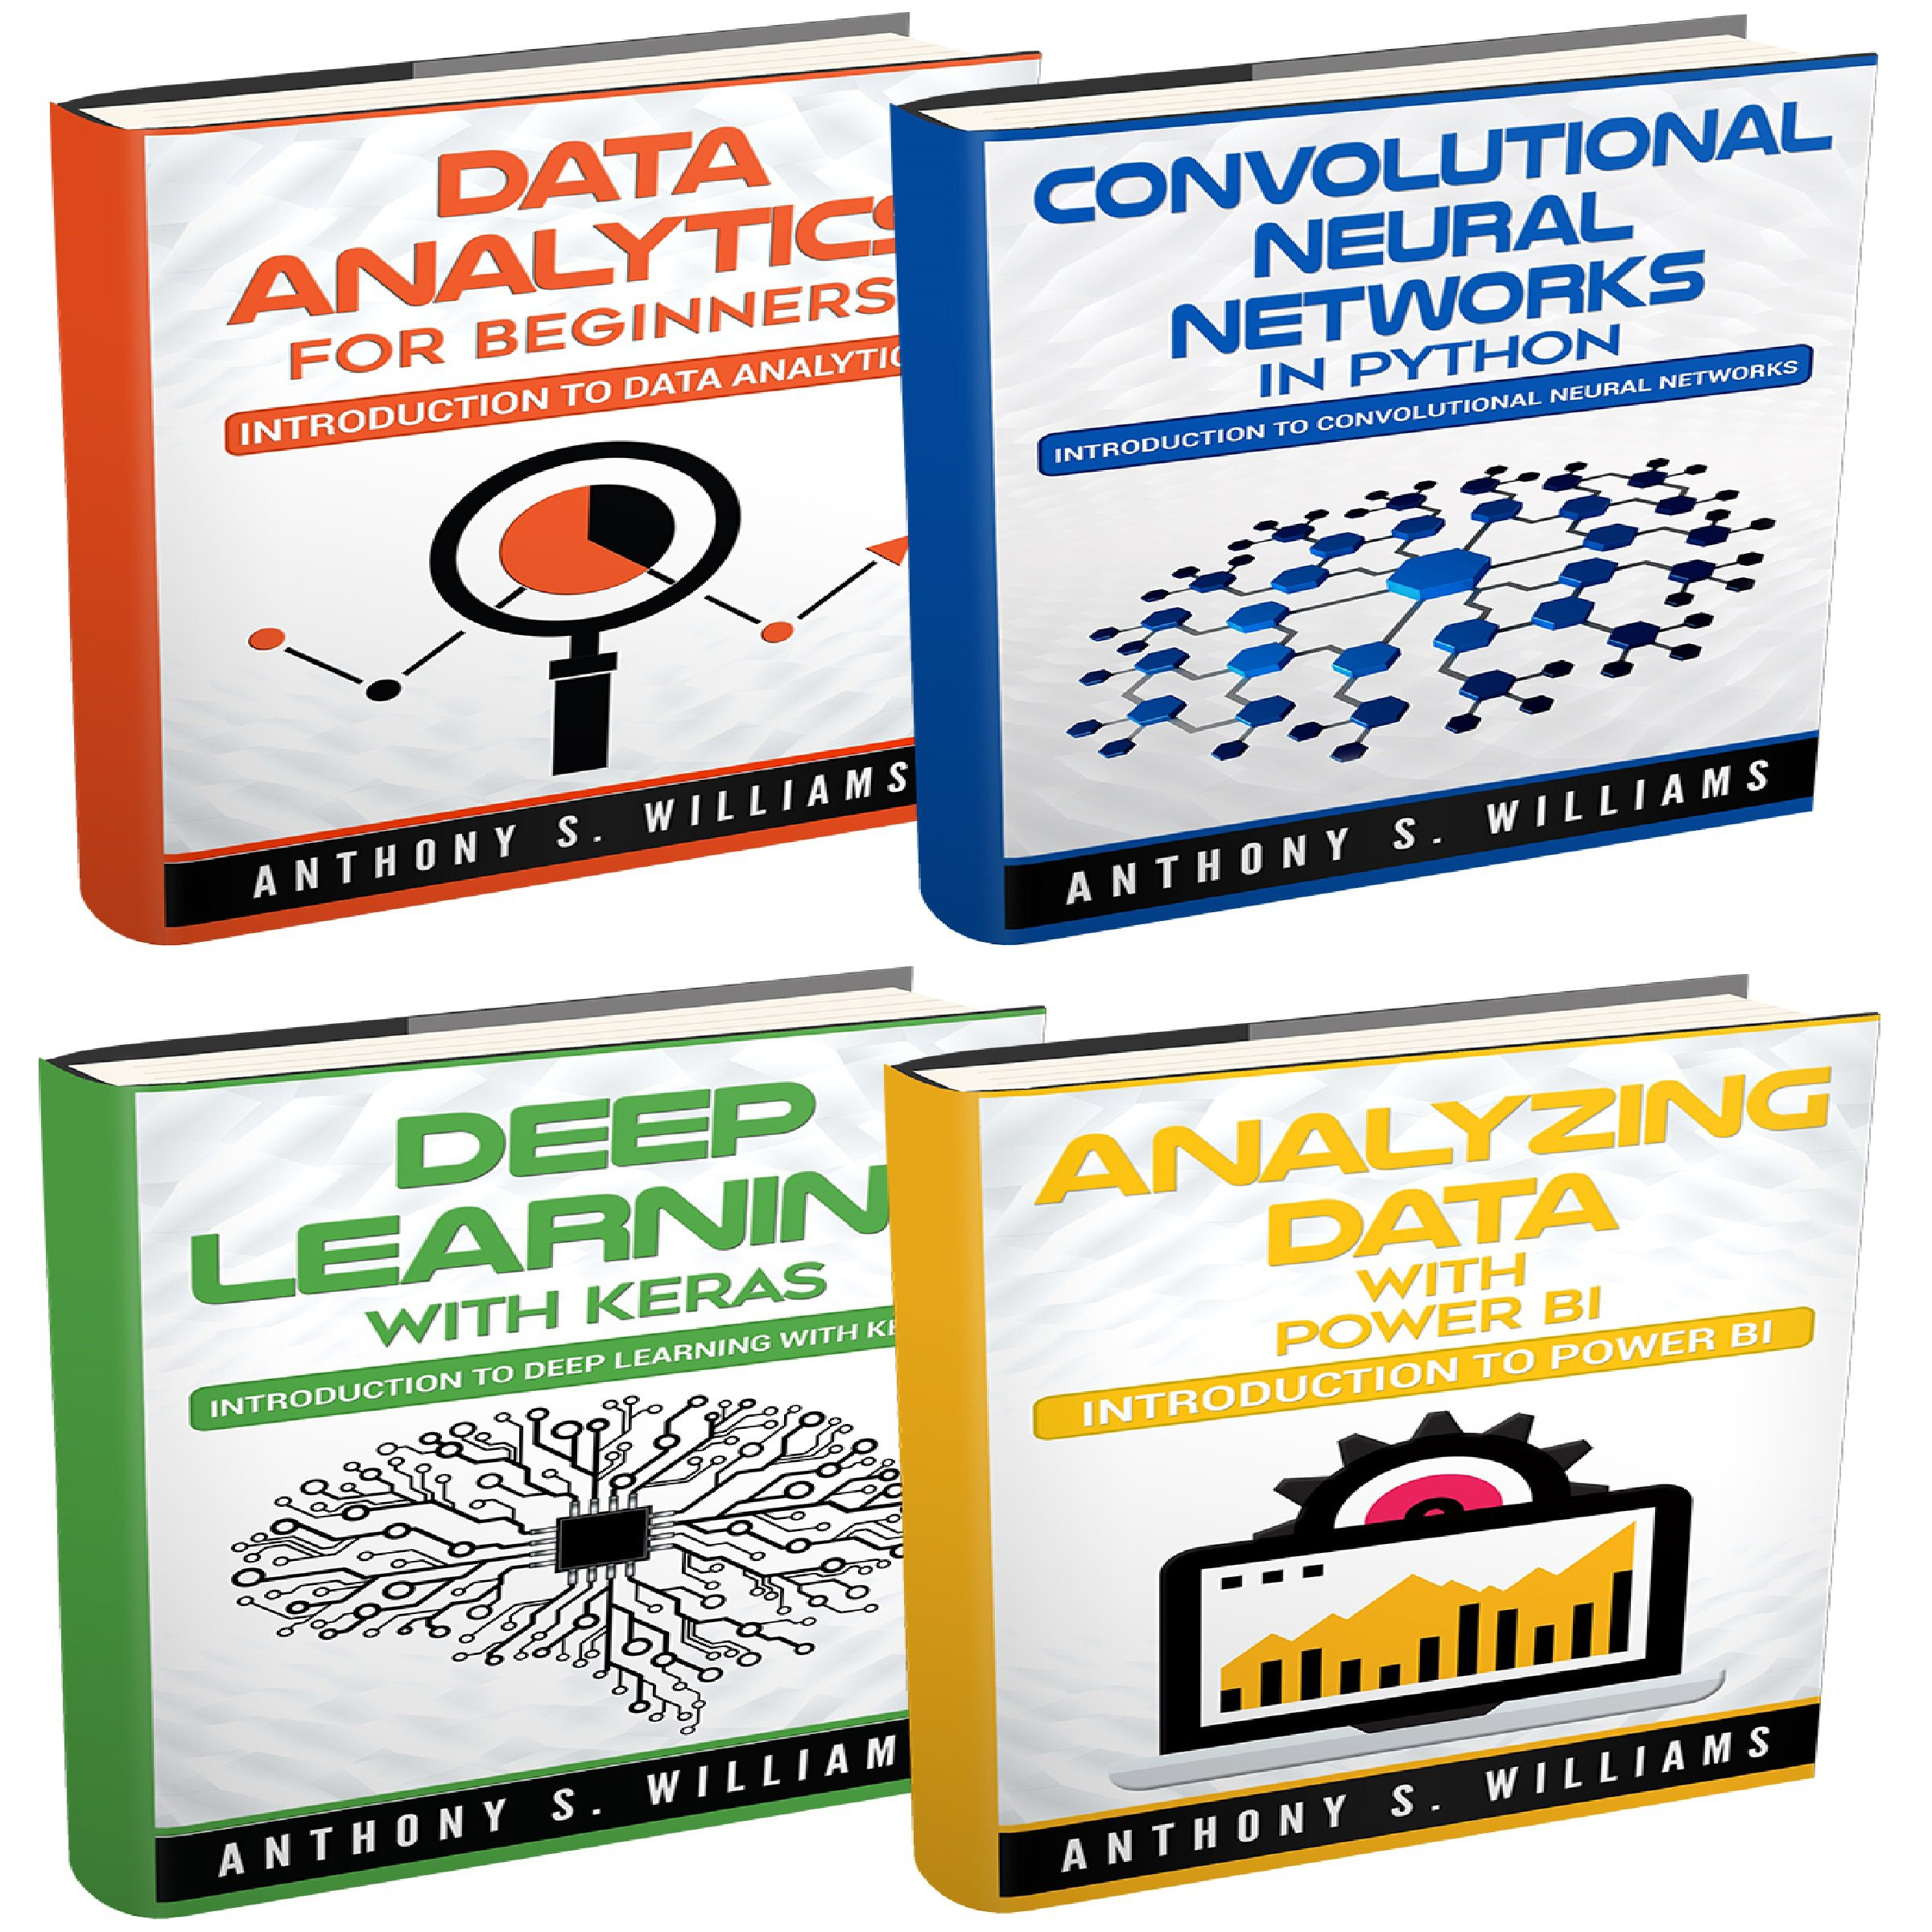 Big Data: 4 Manuscripts: Data Analytics for Beginners, Deep Learning with Keras, Analyzing Data with Power BI, Convolutional Neural Networks in Python